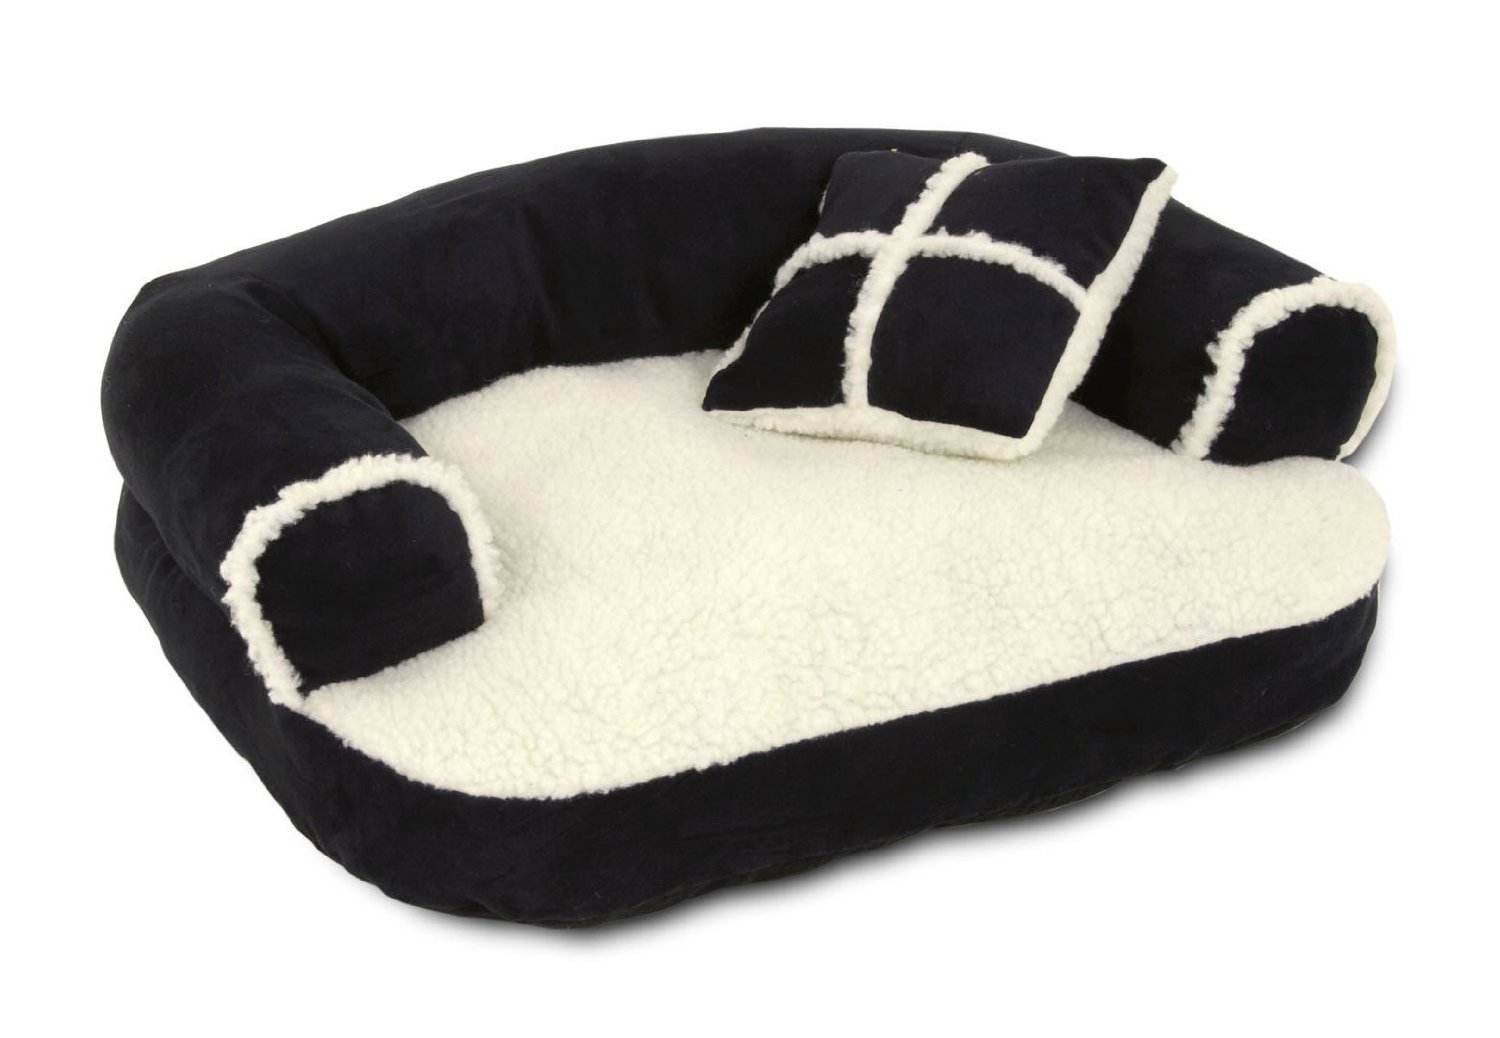 sofa dog bed skymall what is a transitional things to consider before replacing your old